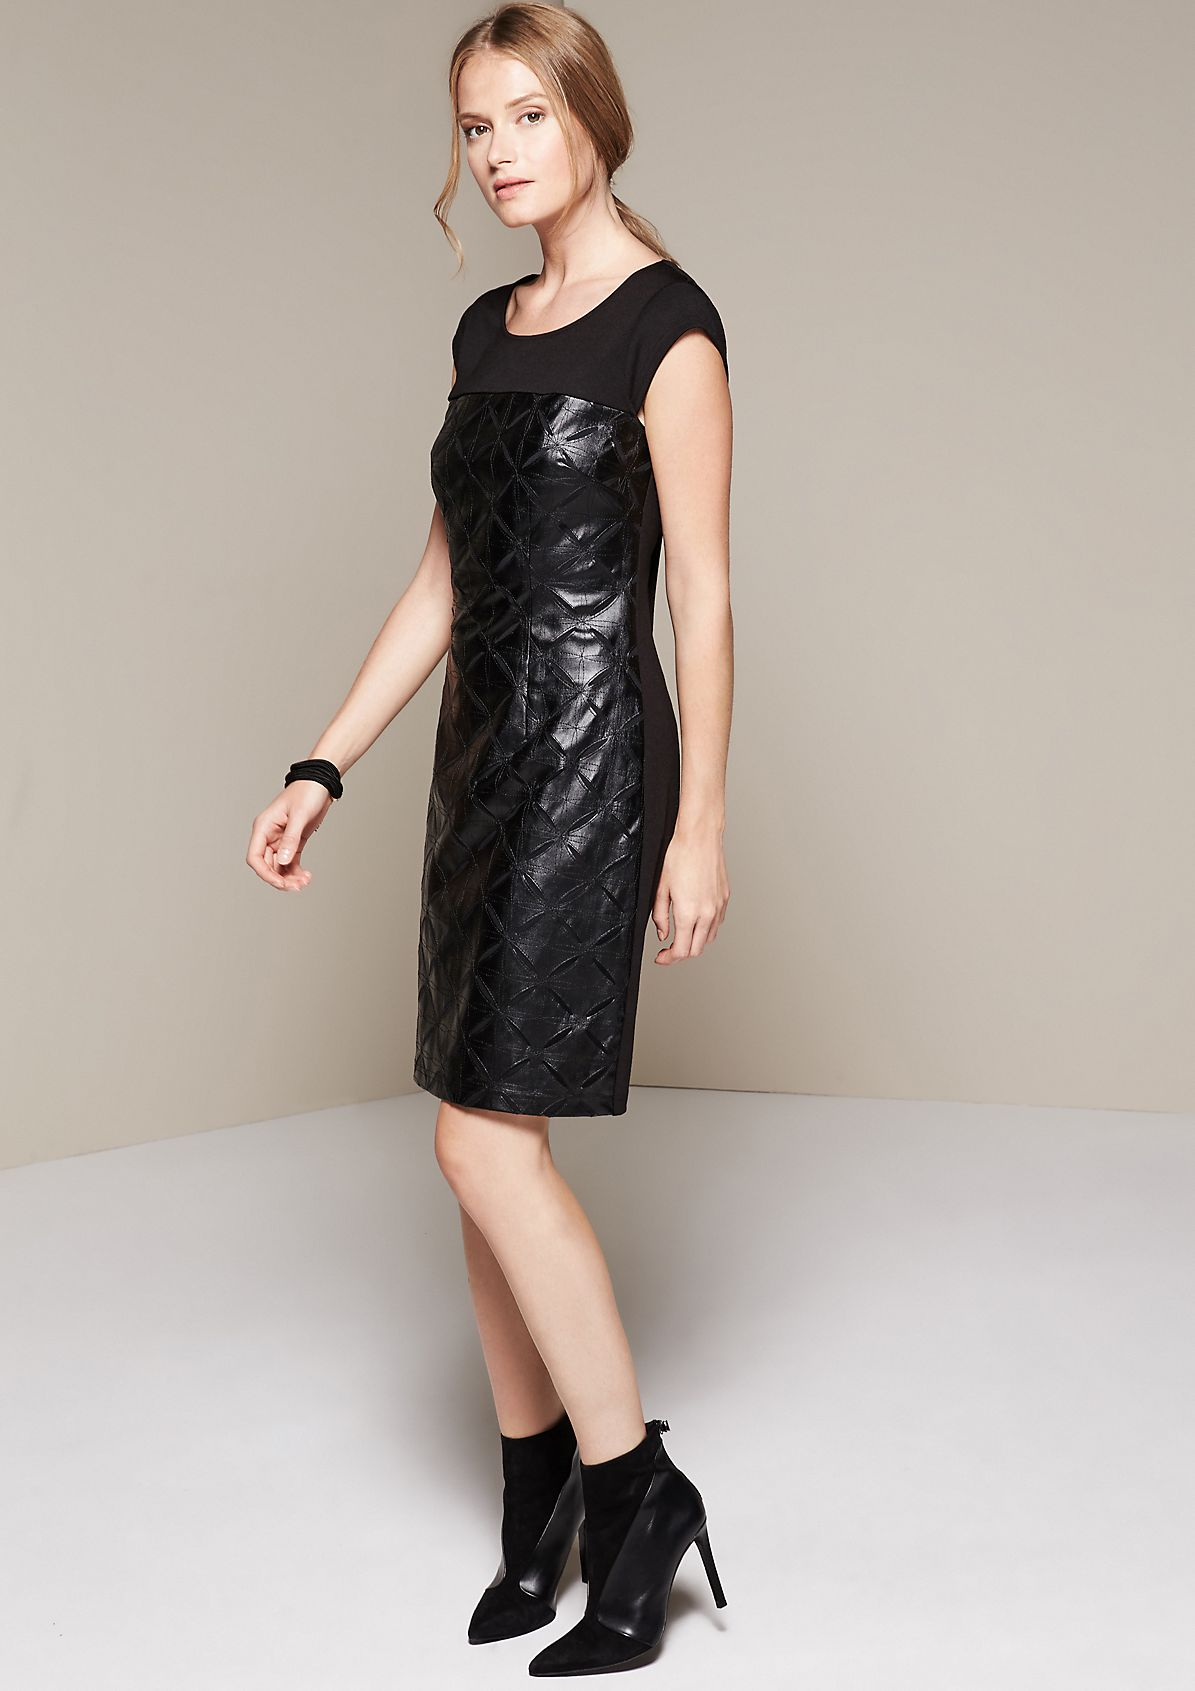 Glamorous imitation leather evening dress with a sophisticated pattern from s.Oliver